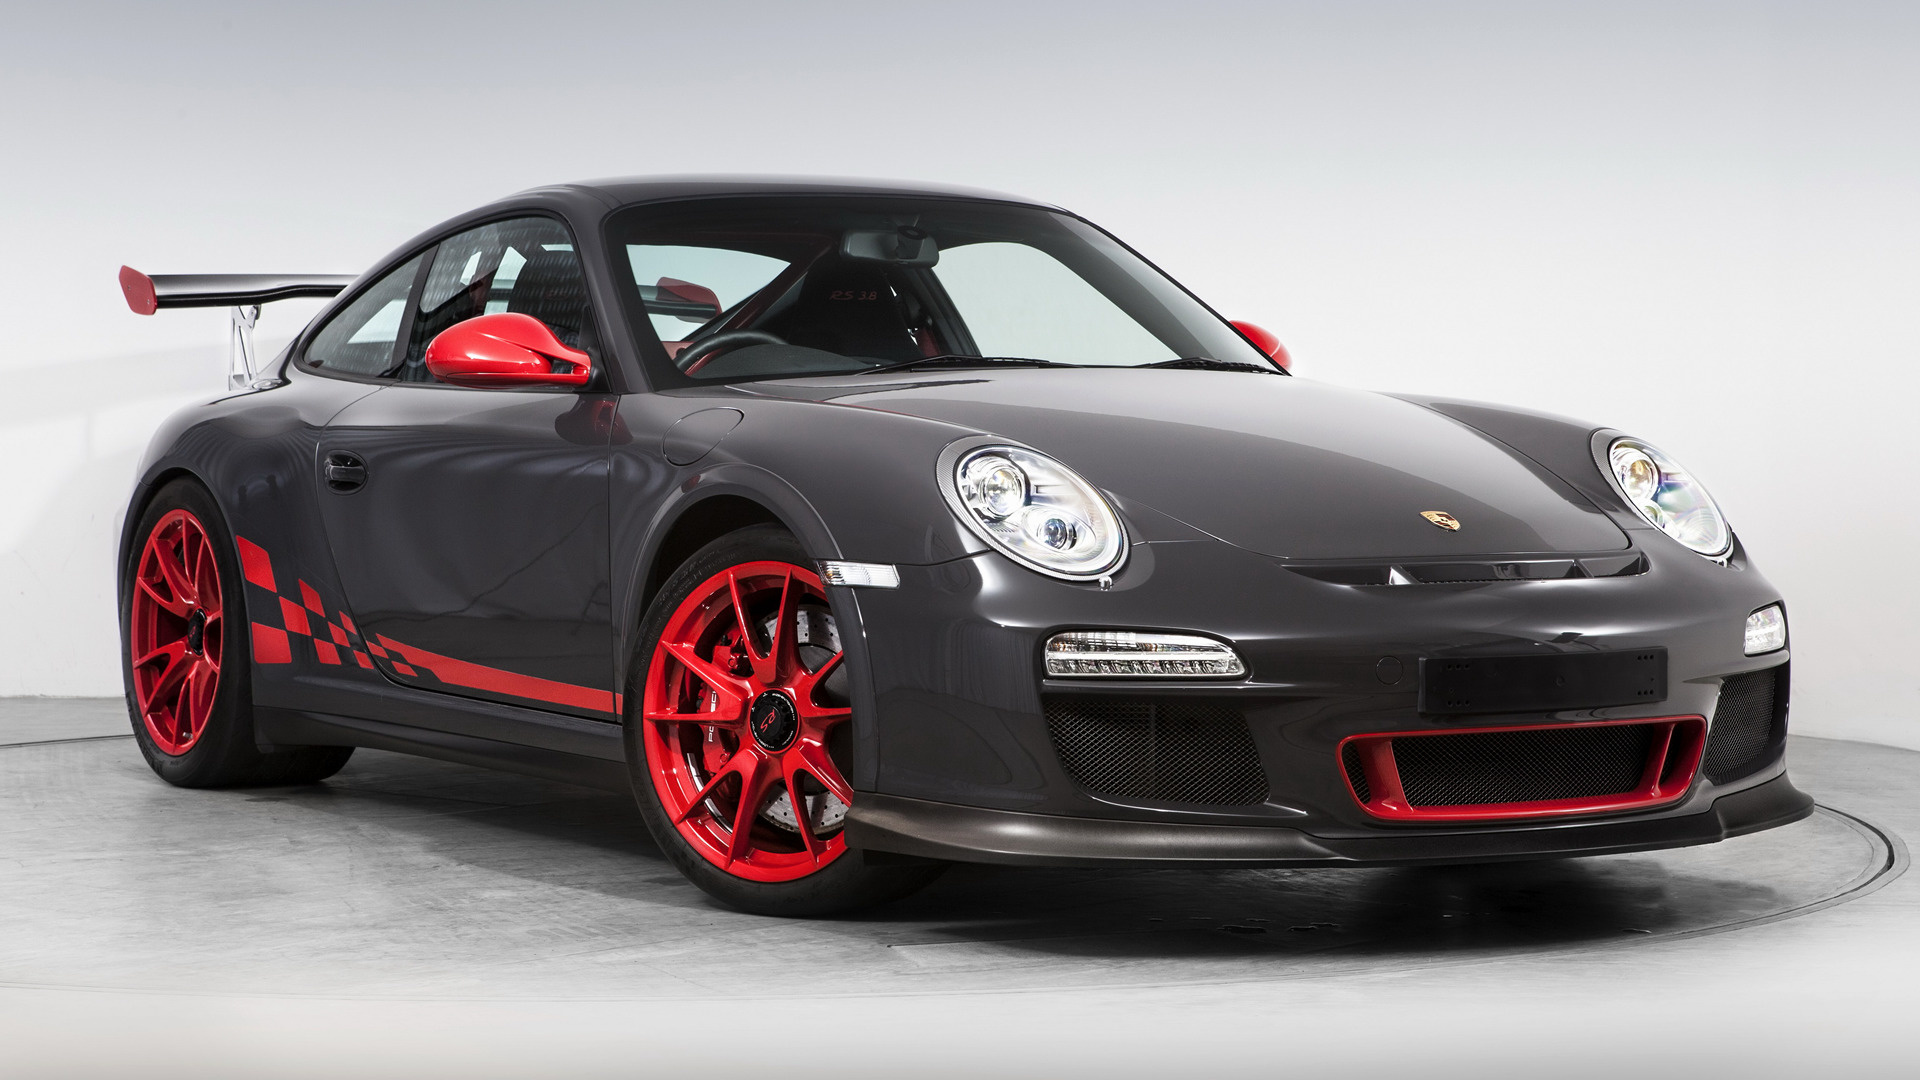 2009 Porsche 911 Gt3 Rs Uk Wallpapers And Hd Images